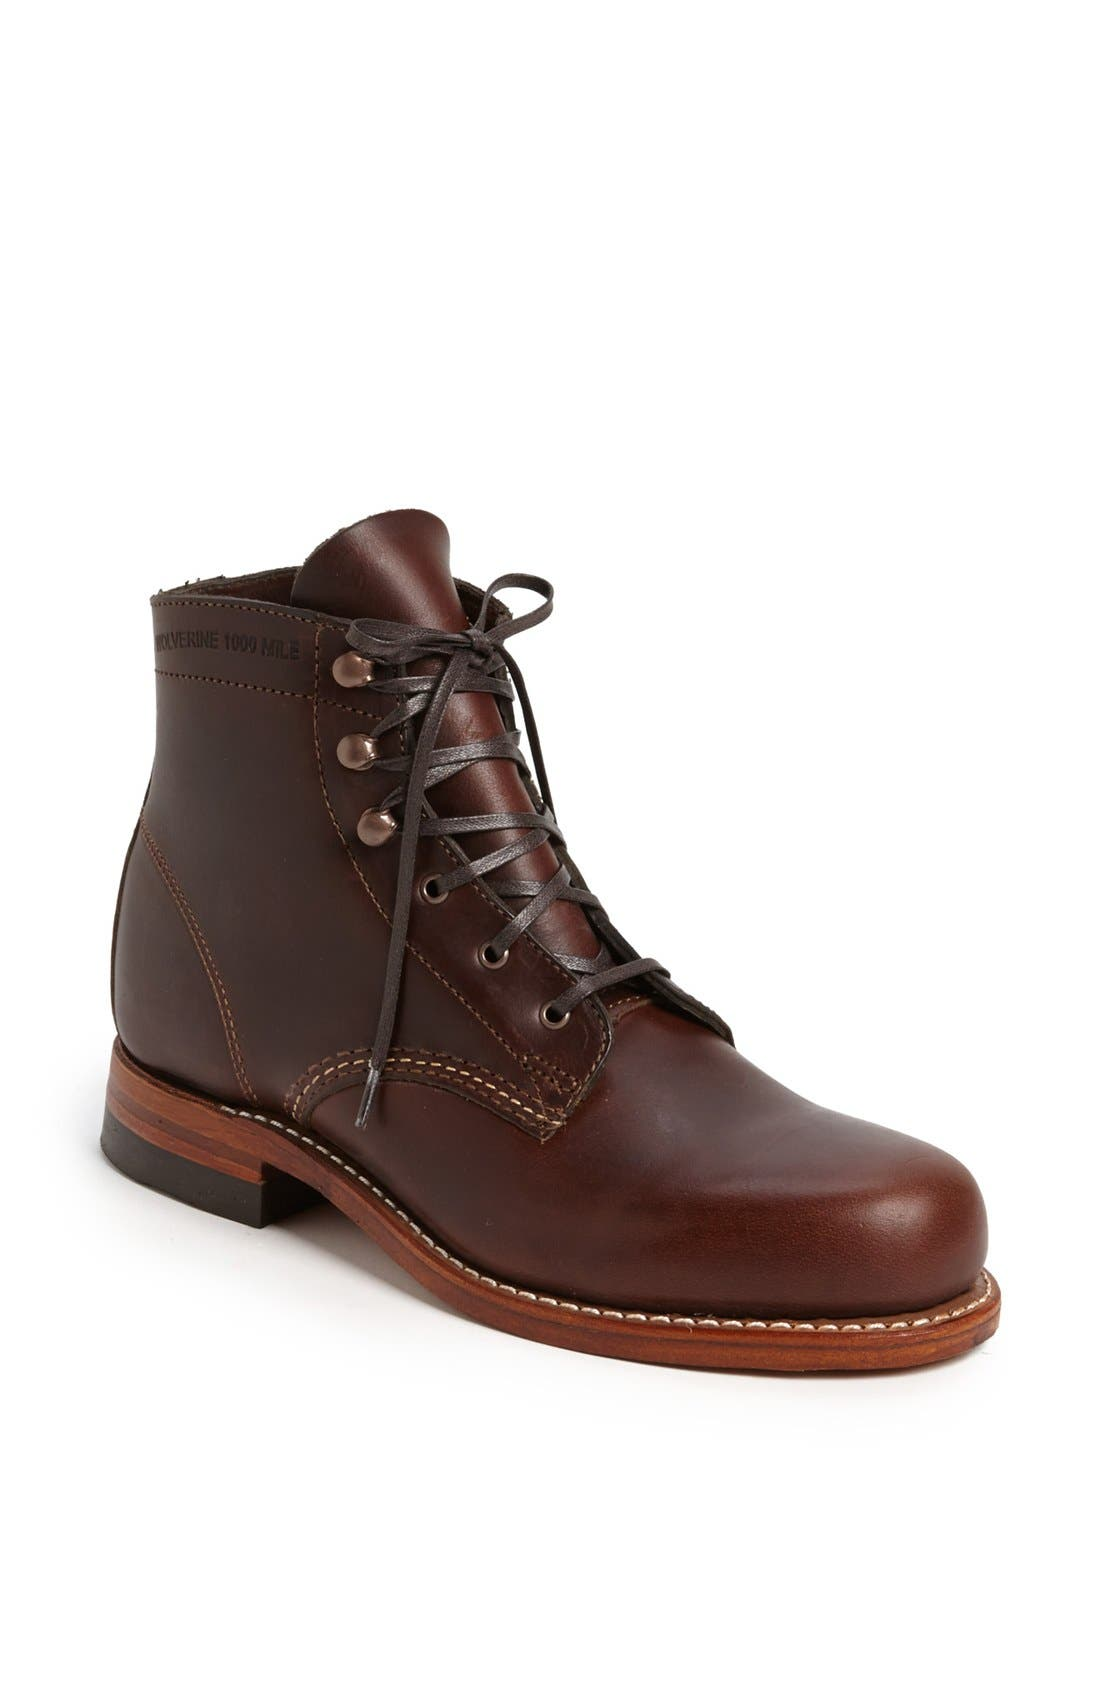 Alternate Image 1 Selected - Wolverine '1000 Mile' Leather Boot (Women)